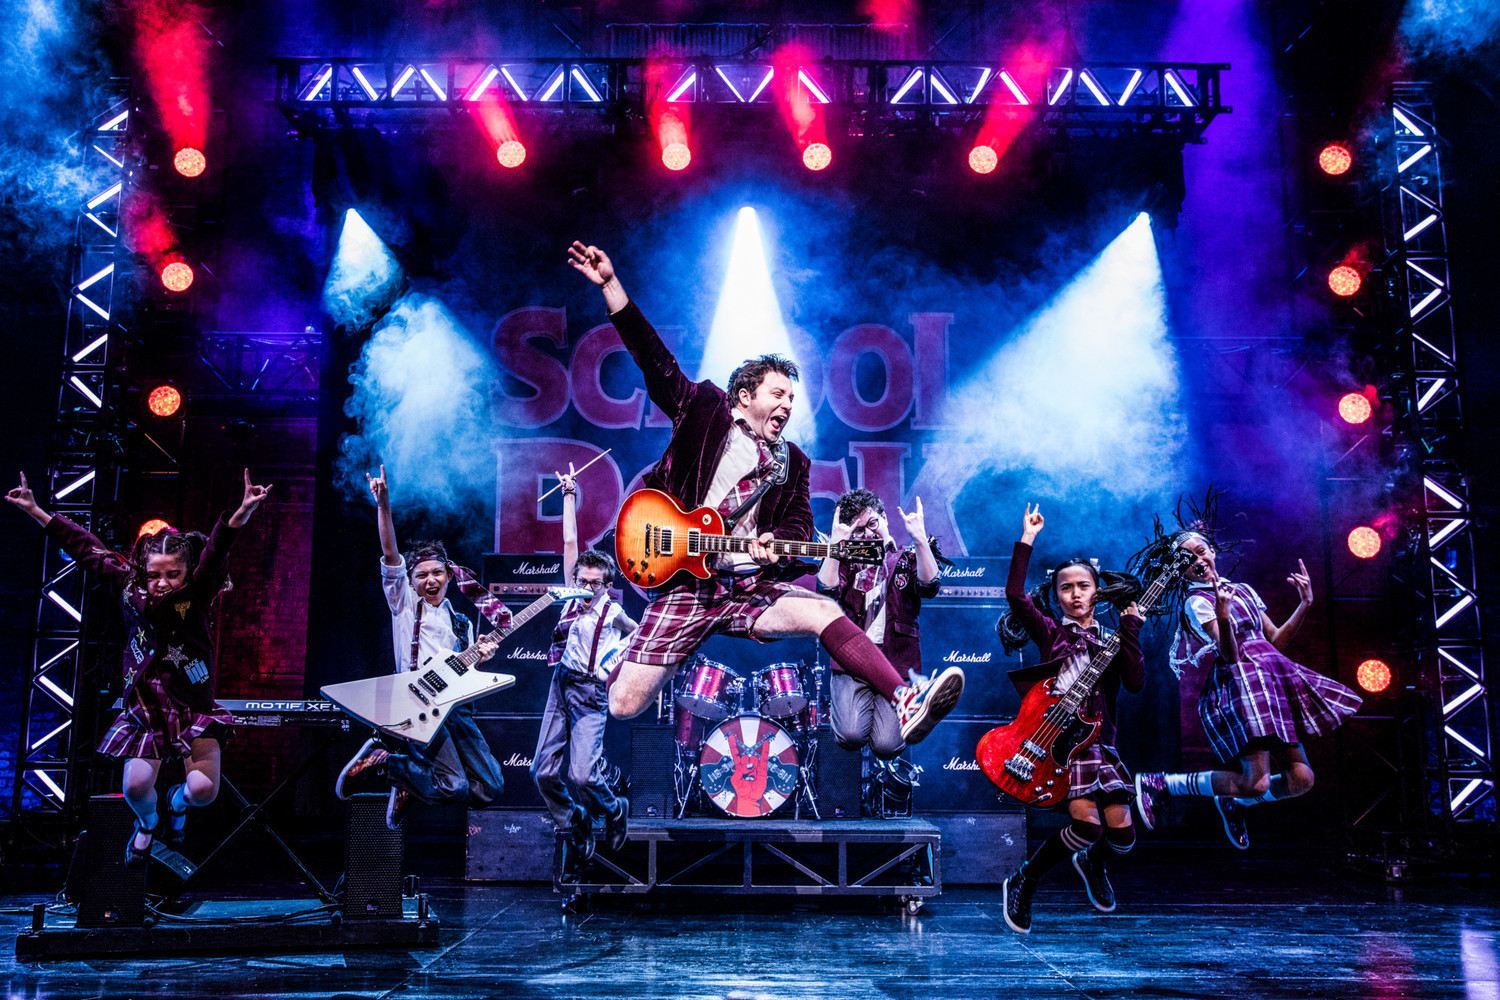 BWW Review: SCHOOL OF ROCK THE MUSICAL at National Theatre